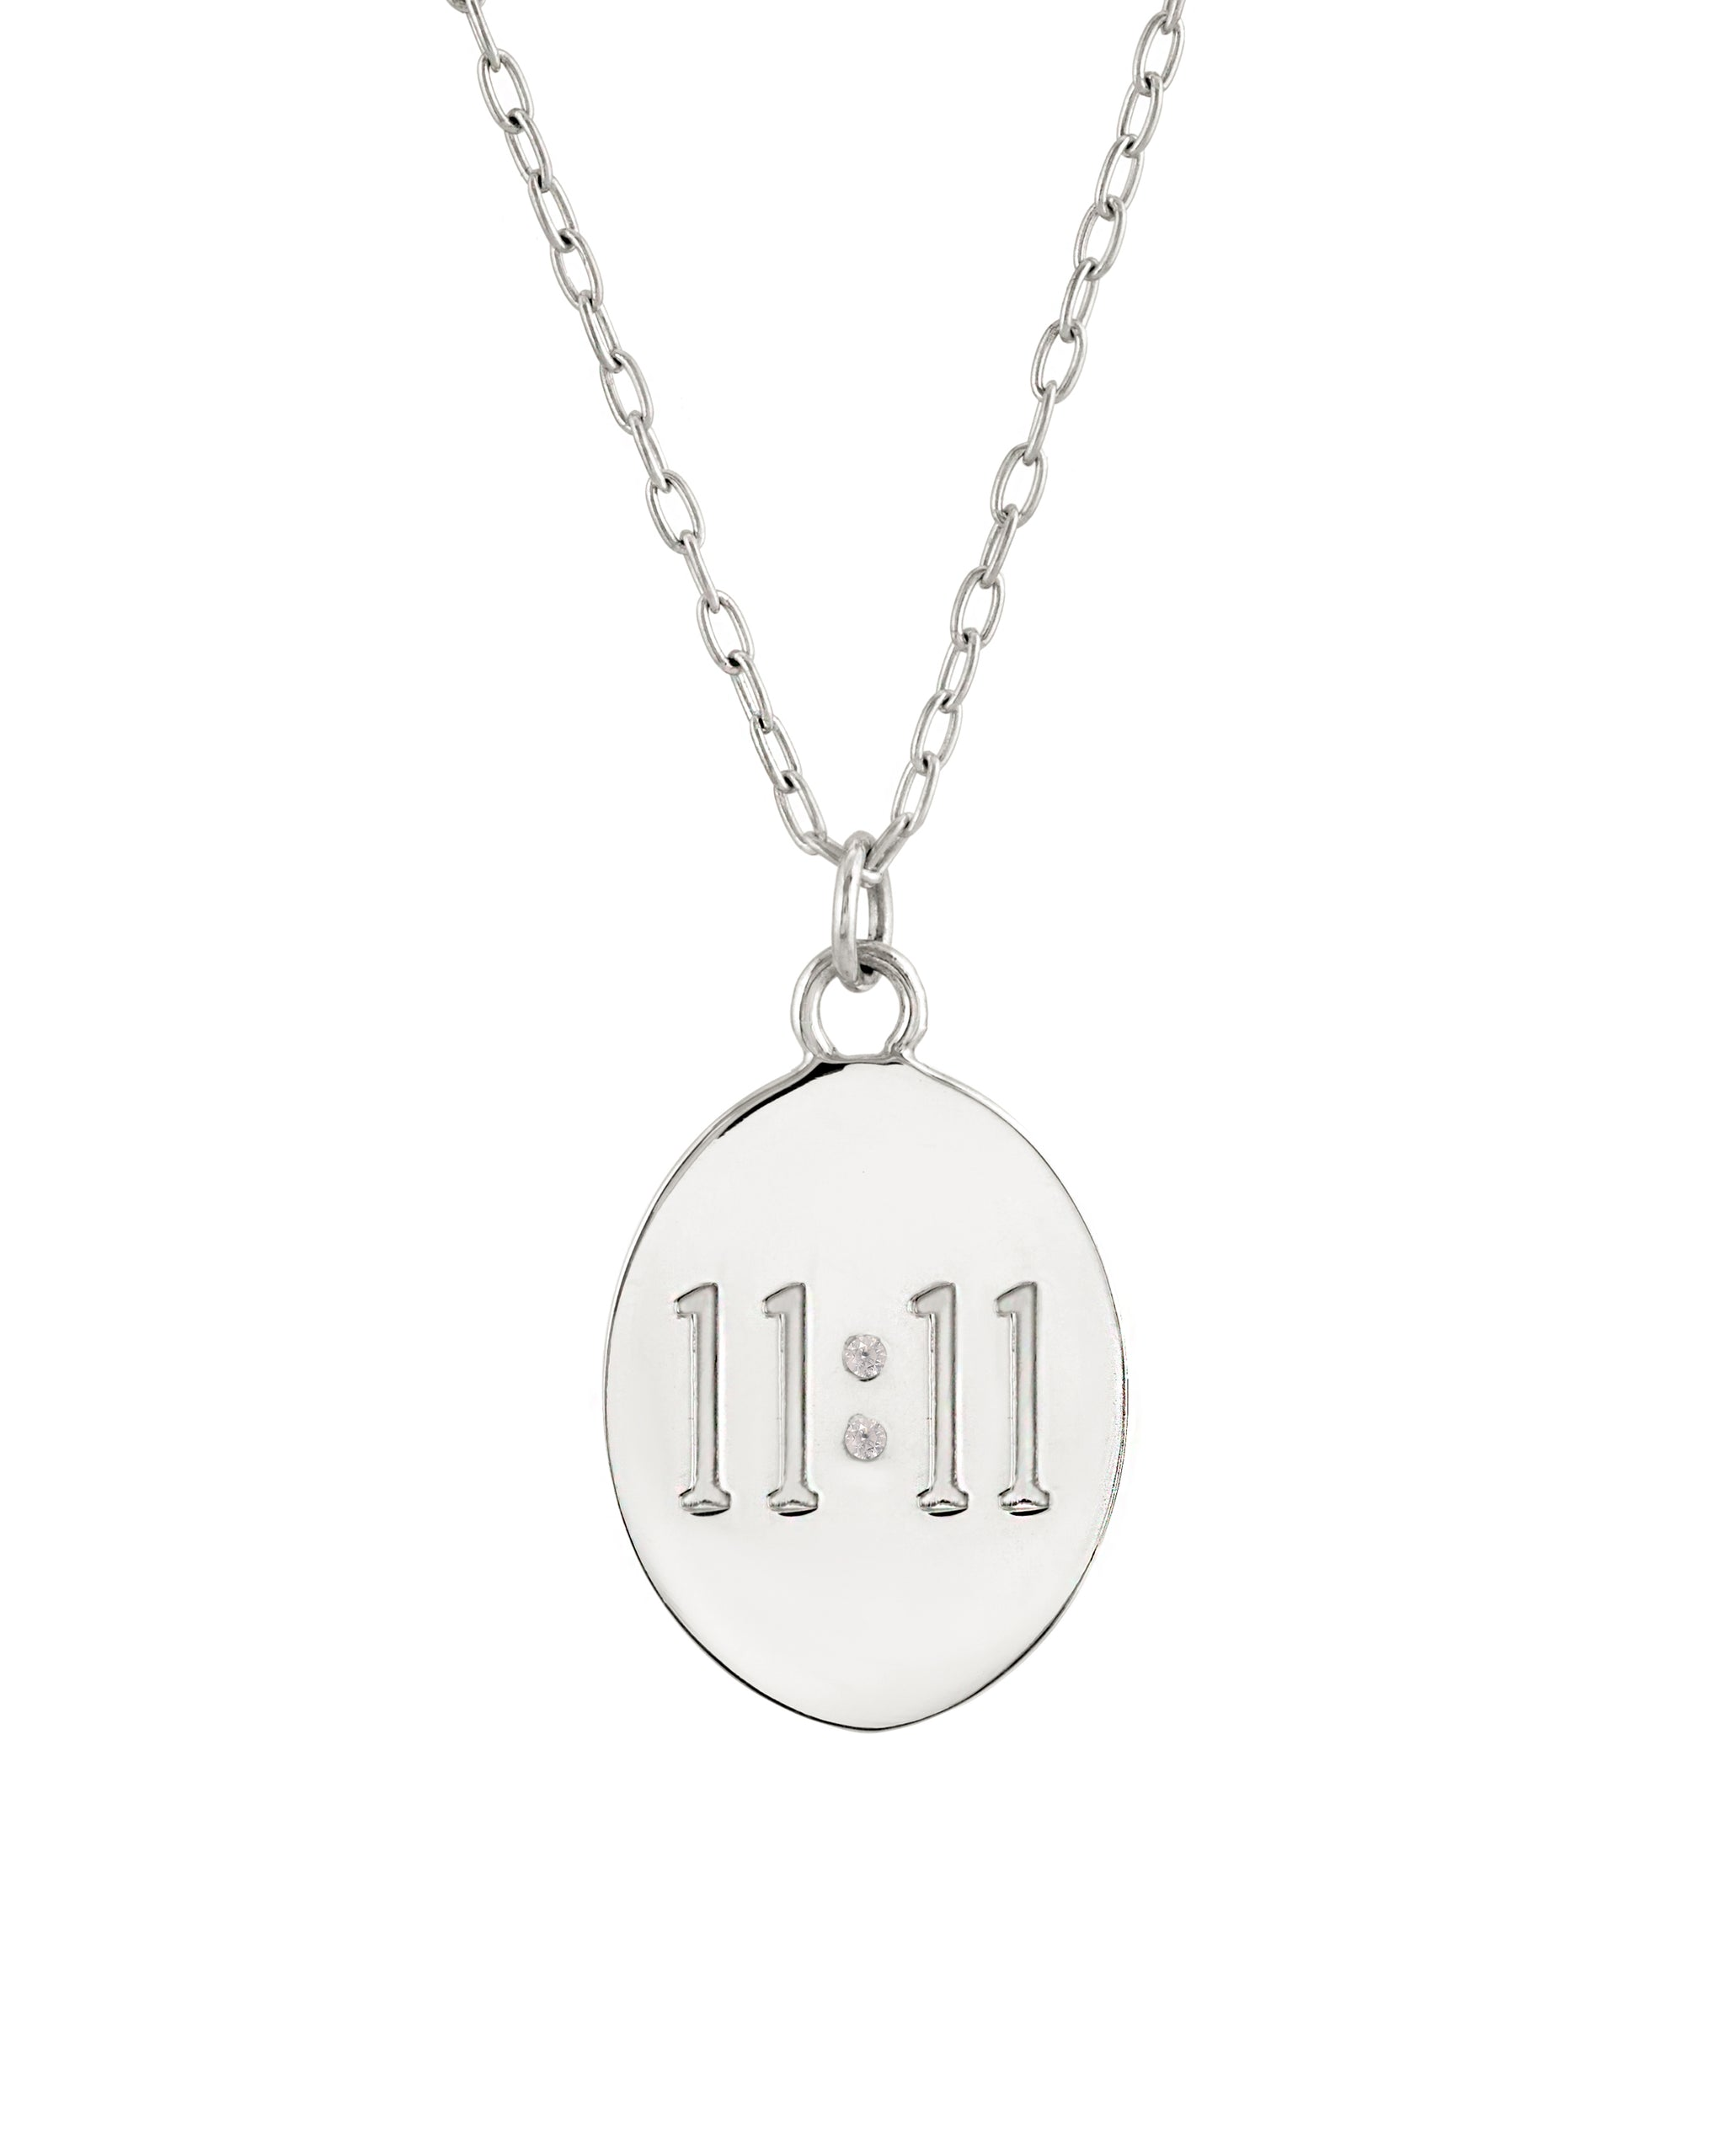 11:11 NECKLACE